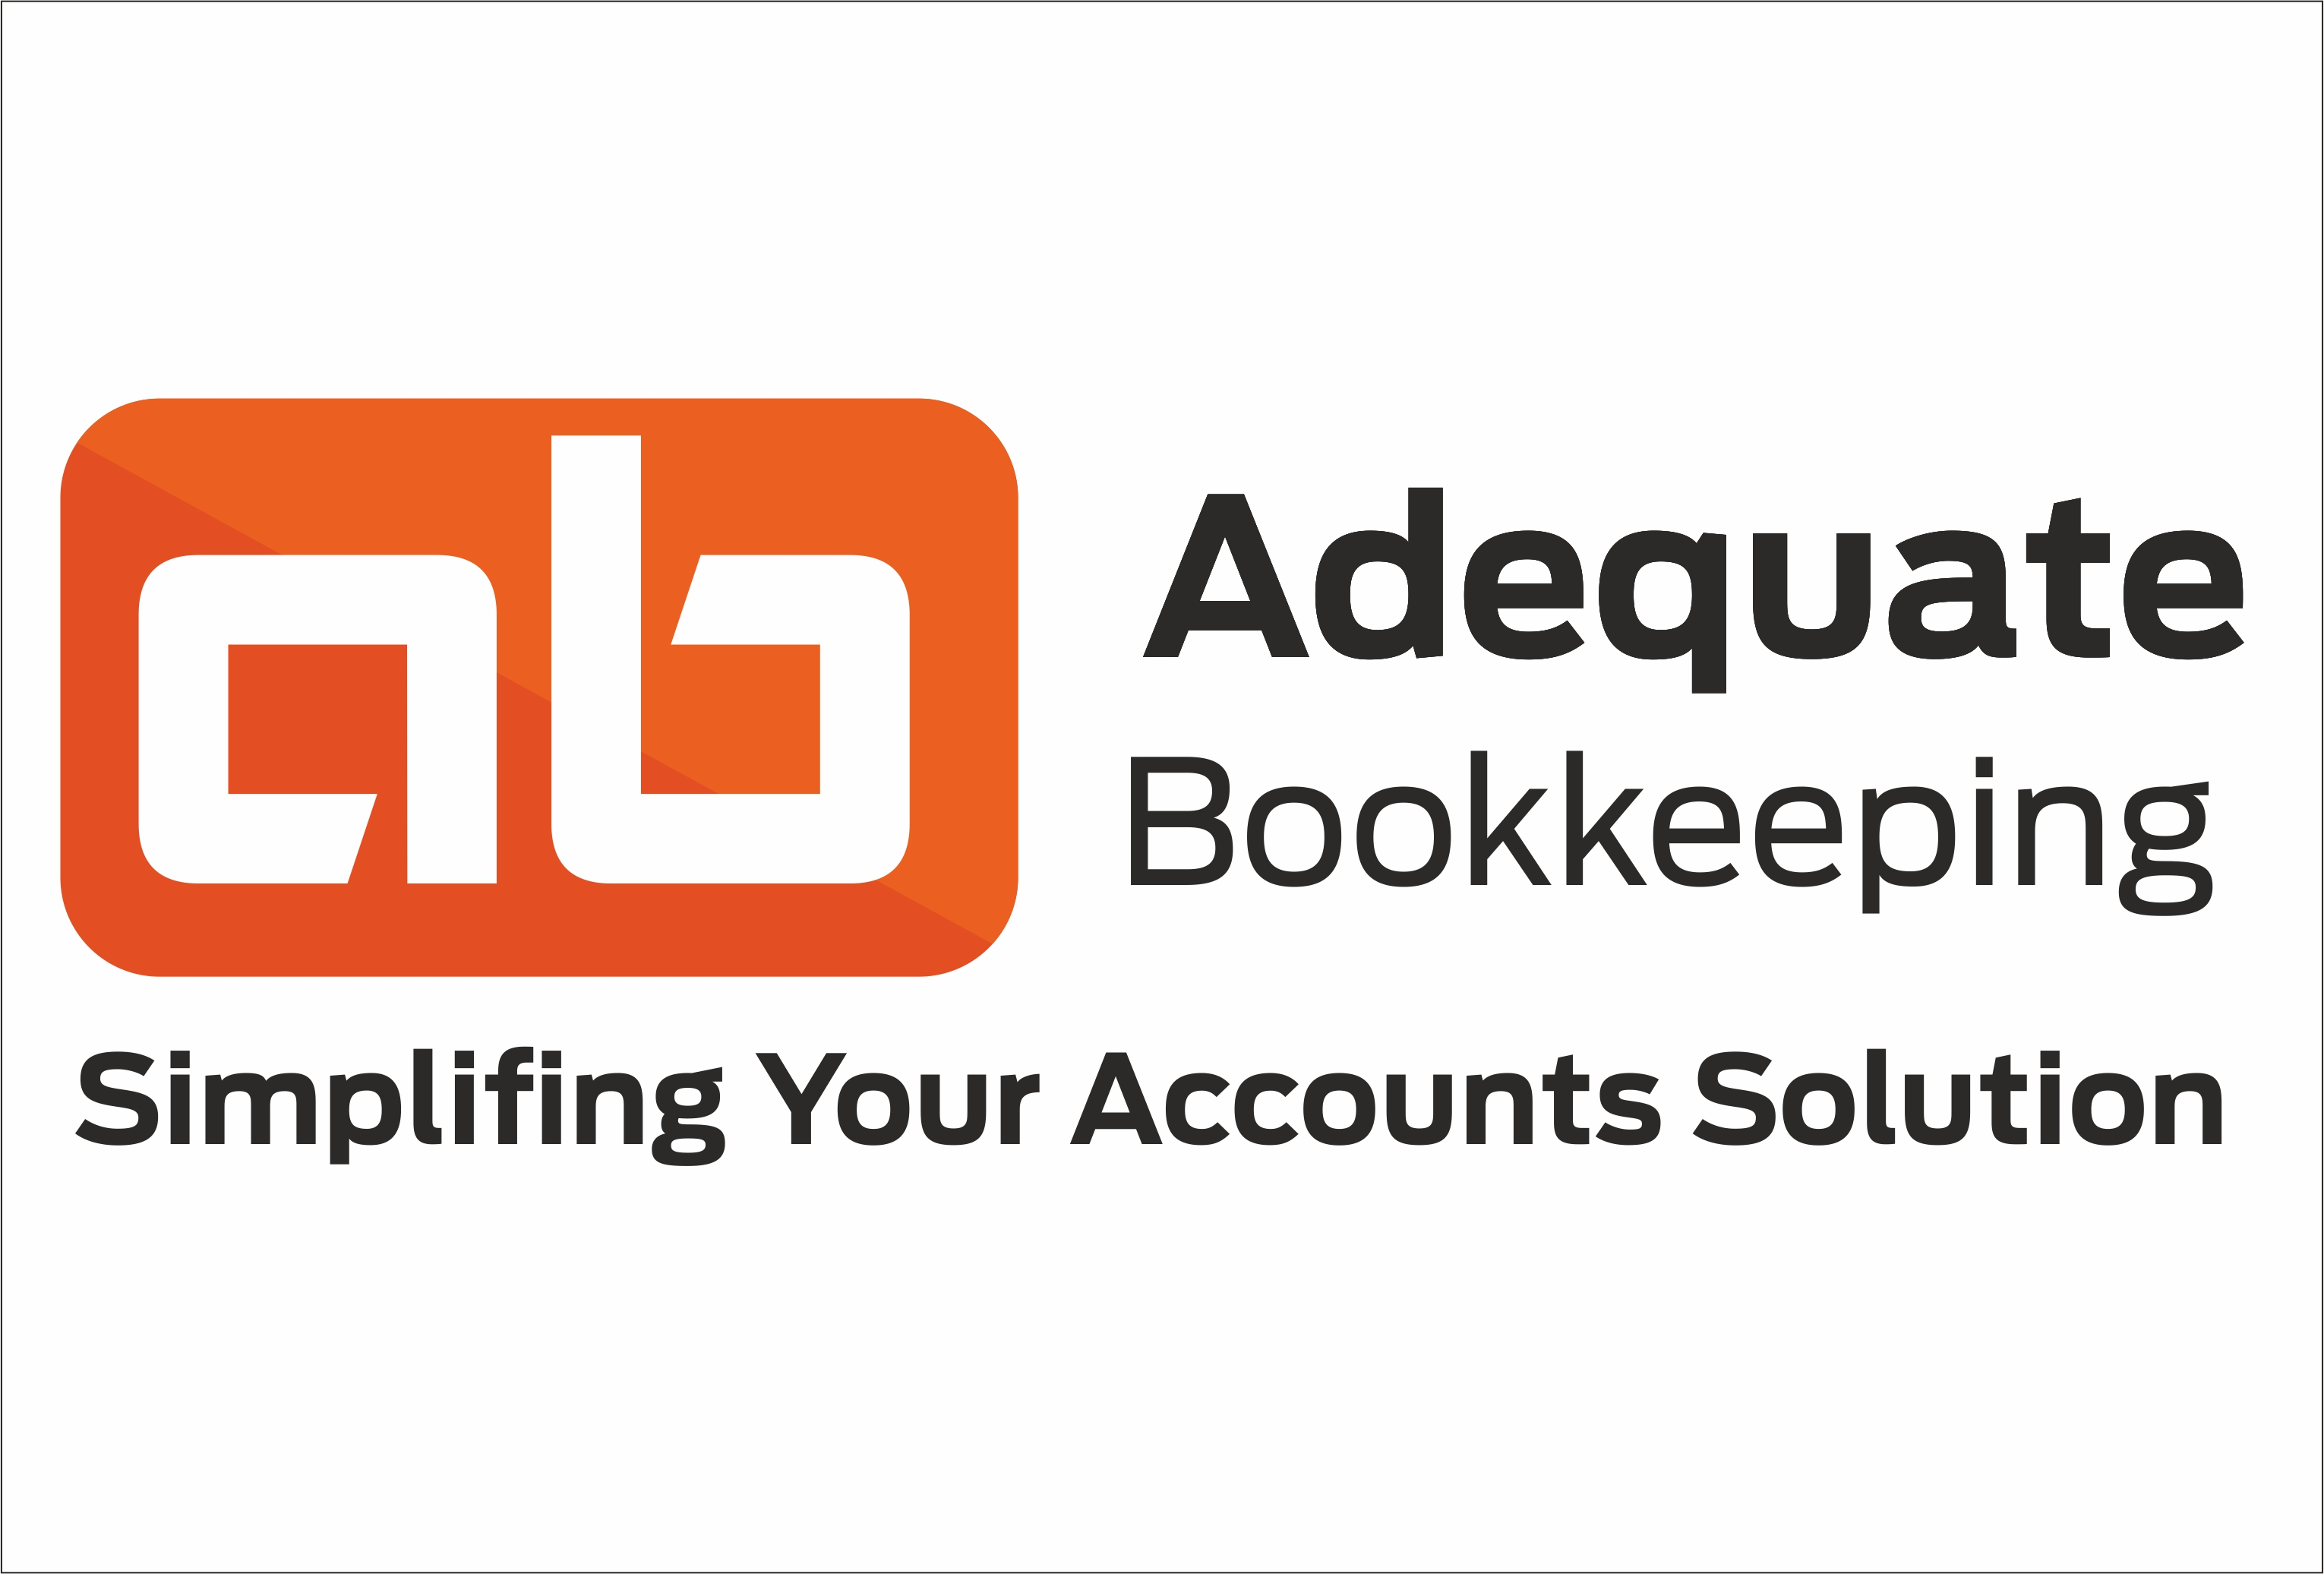 Adequate Bookkeeping Services